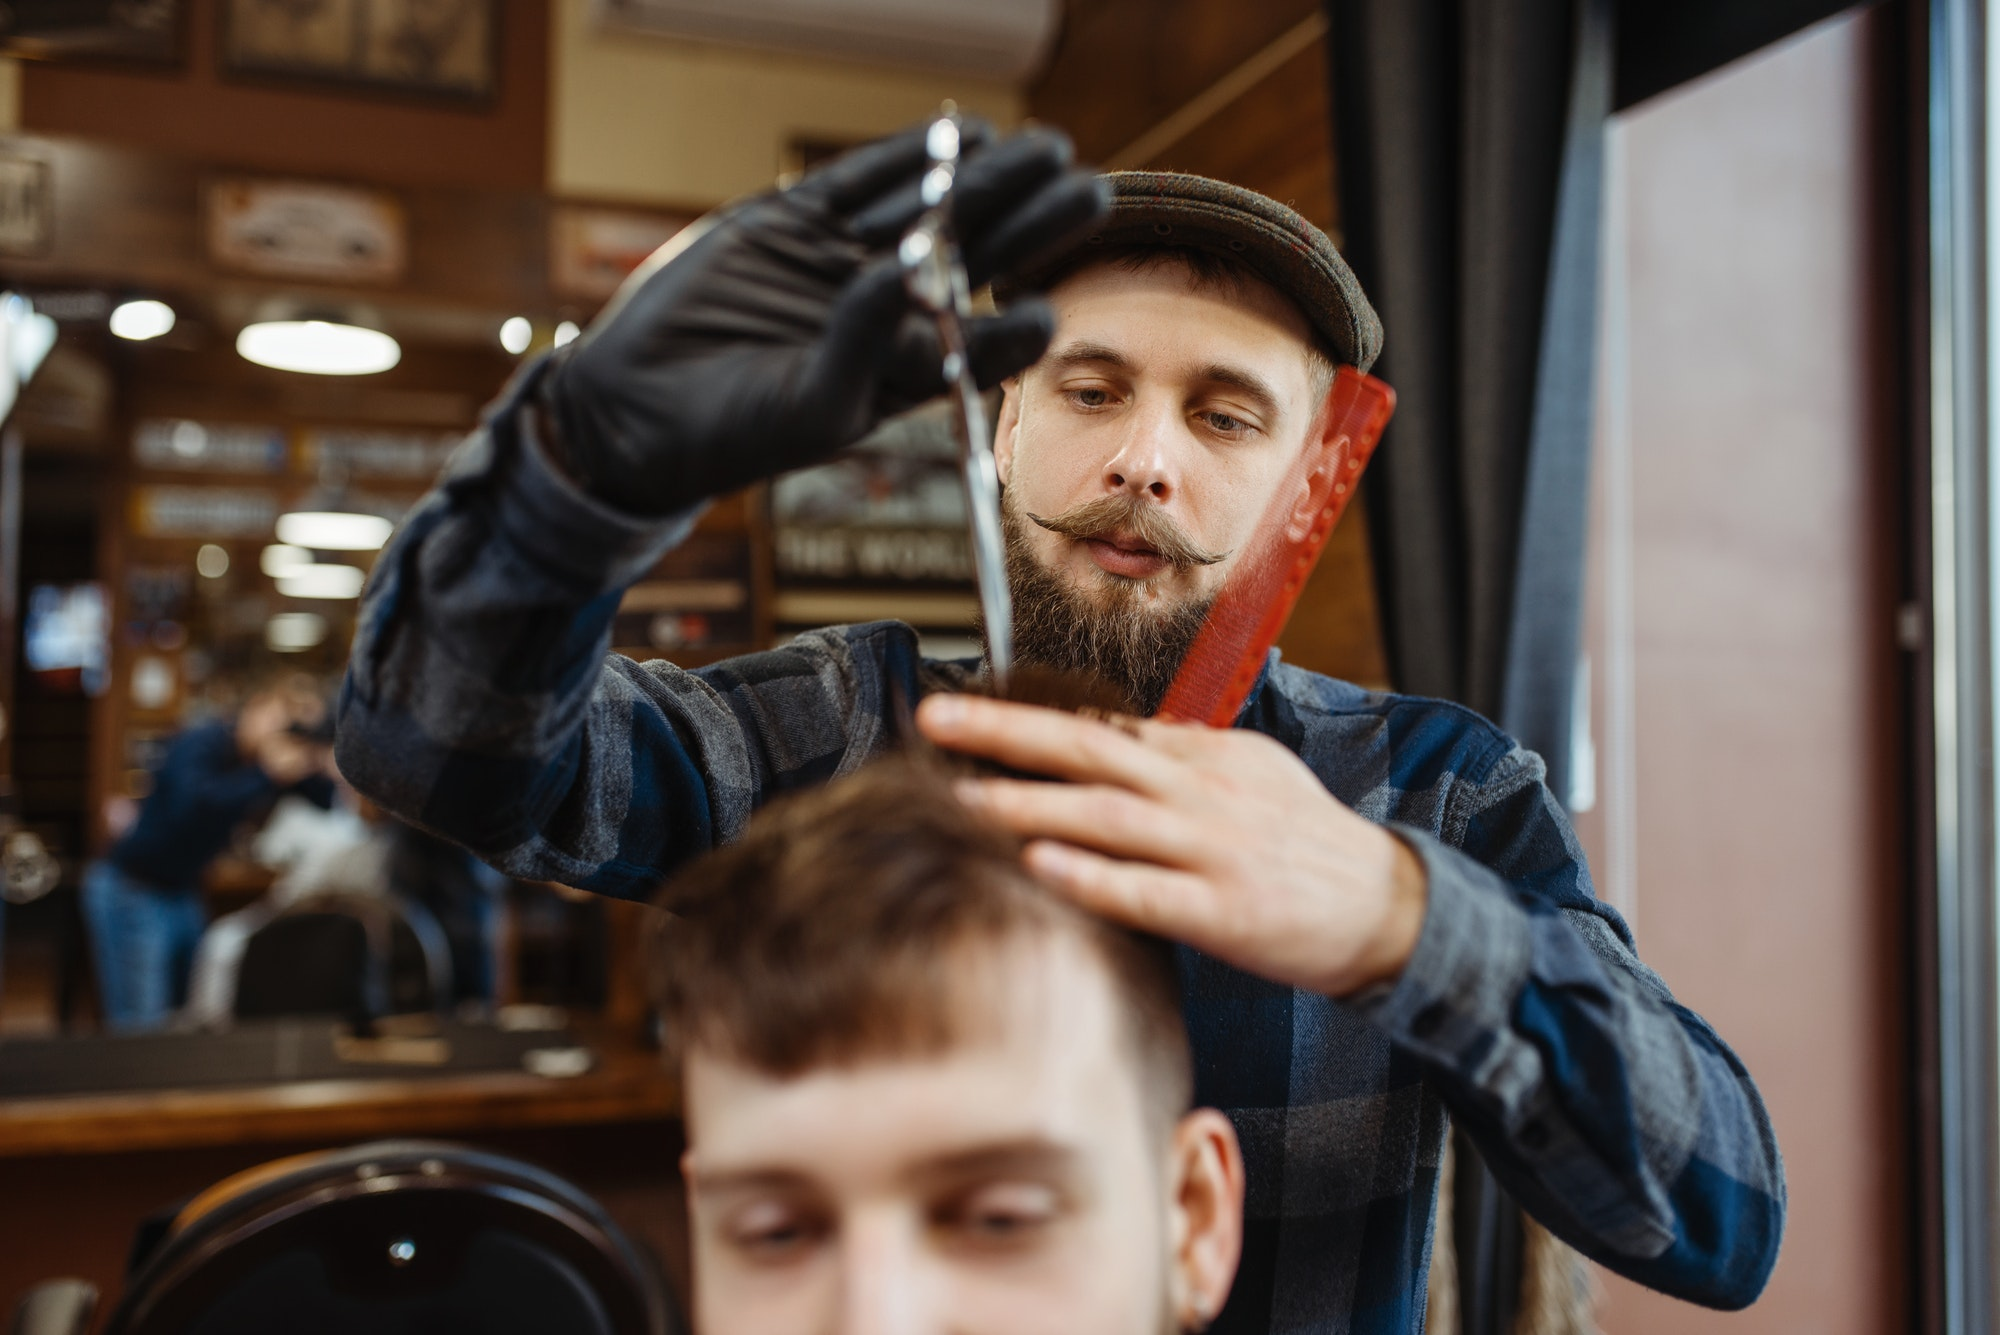 Barber makes stylish haircut to client, barbershop